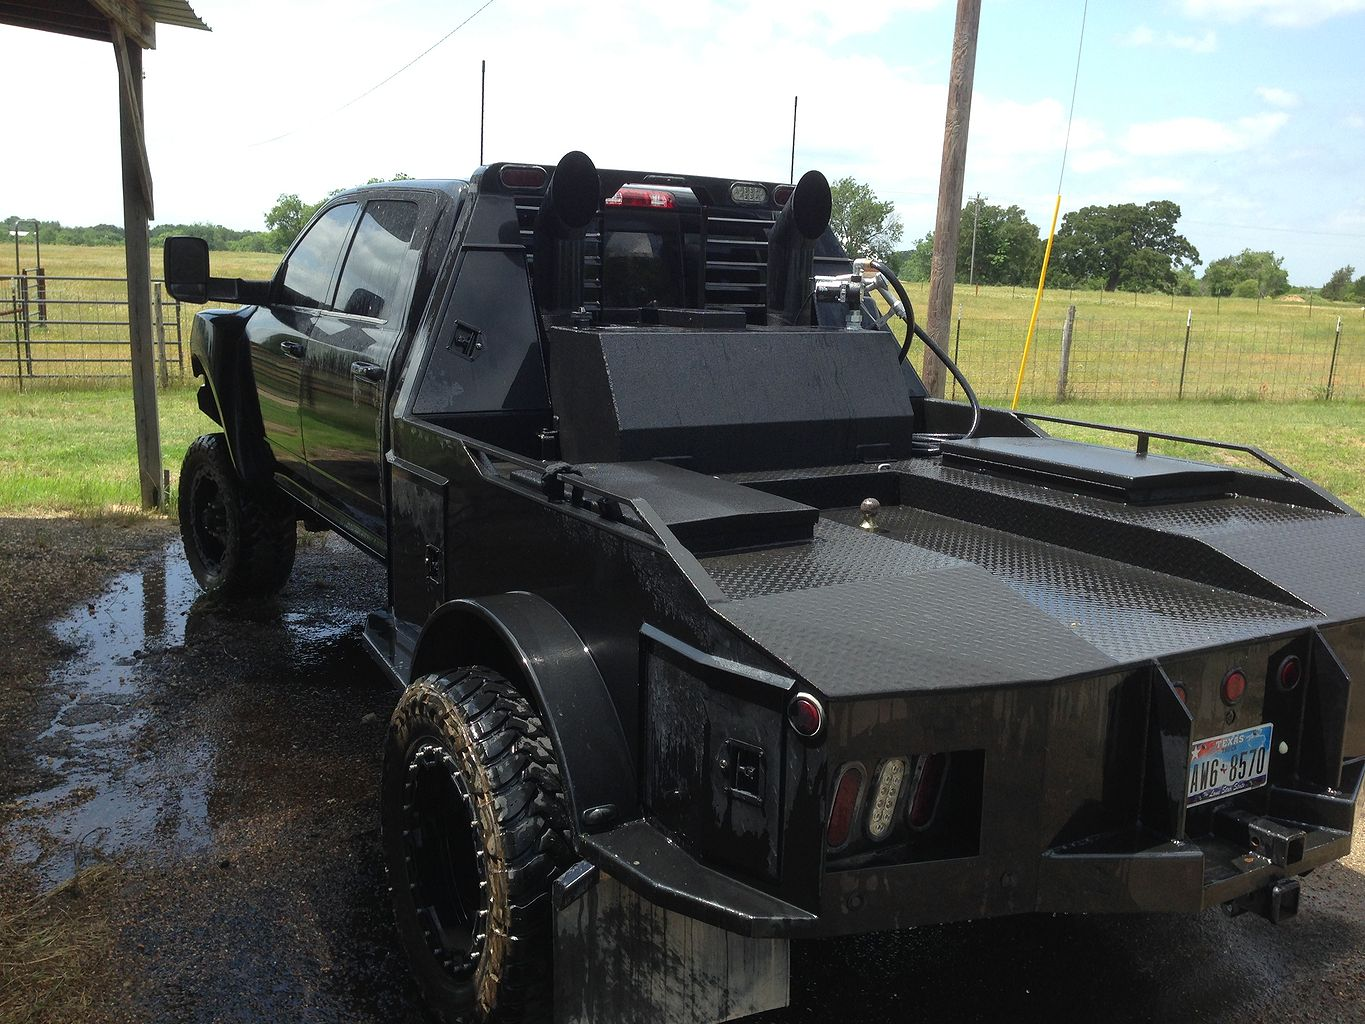 Customized Flatbed Truck Ideas 207 Photos Page 135 Of 207 Mentags